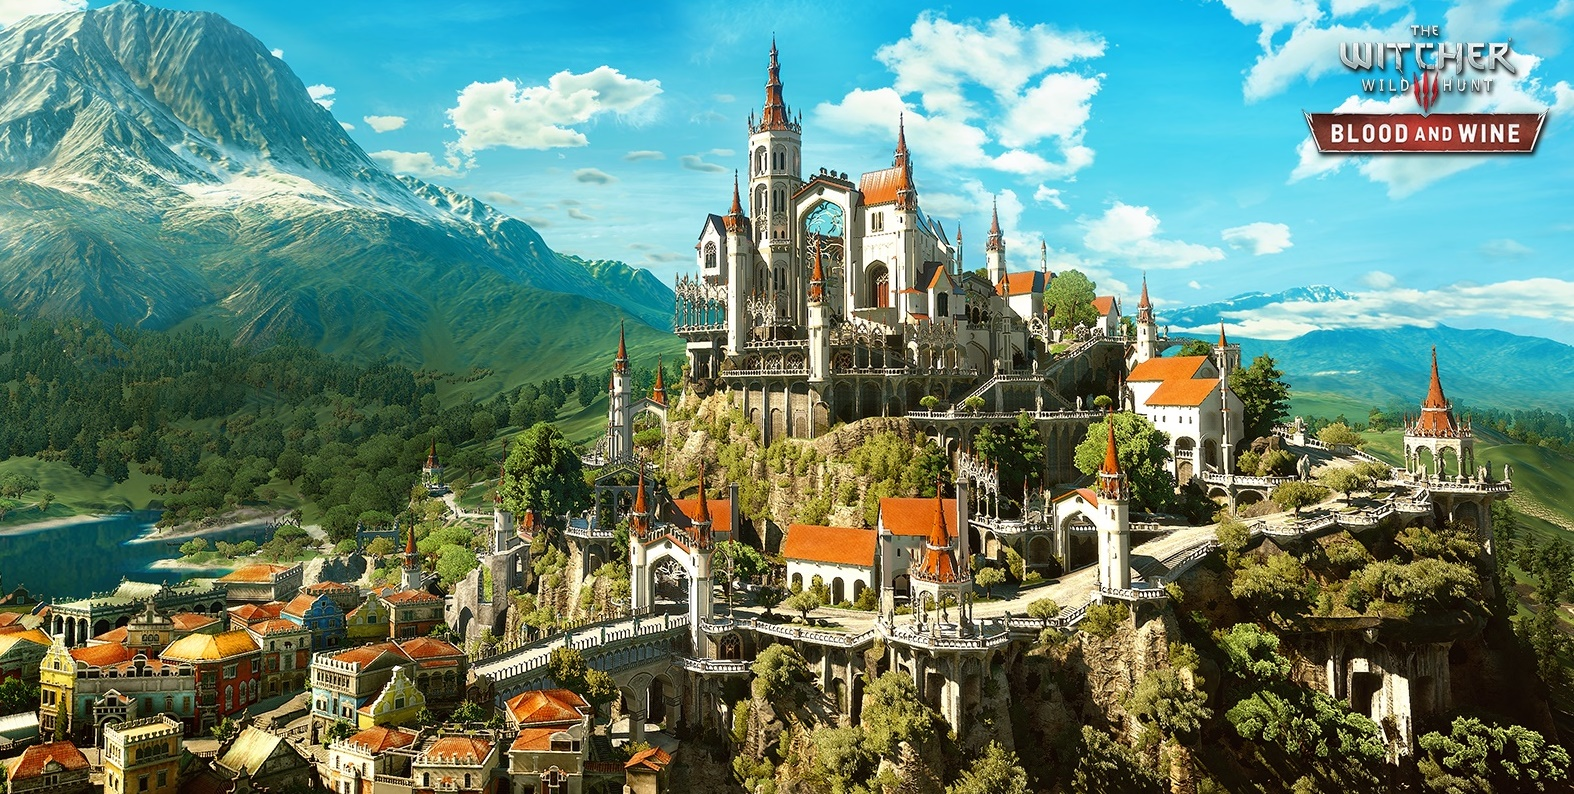 Witcher 3 Blood And Wine Expansion Release Date Potentially Leaked the witcher 3 blood and wine thumb